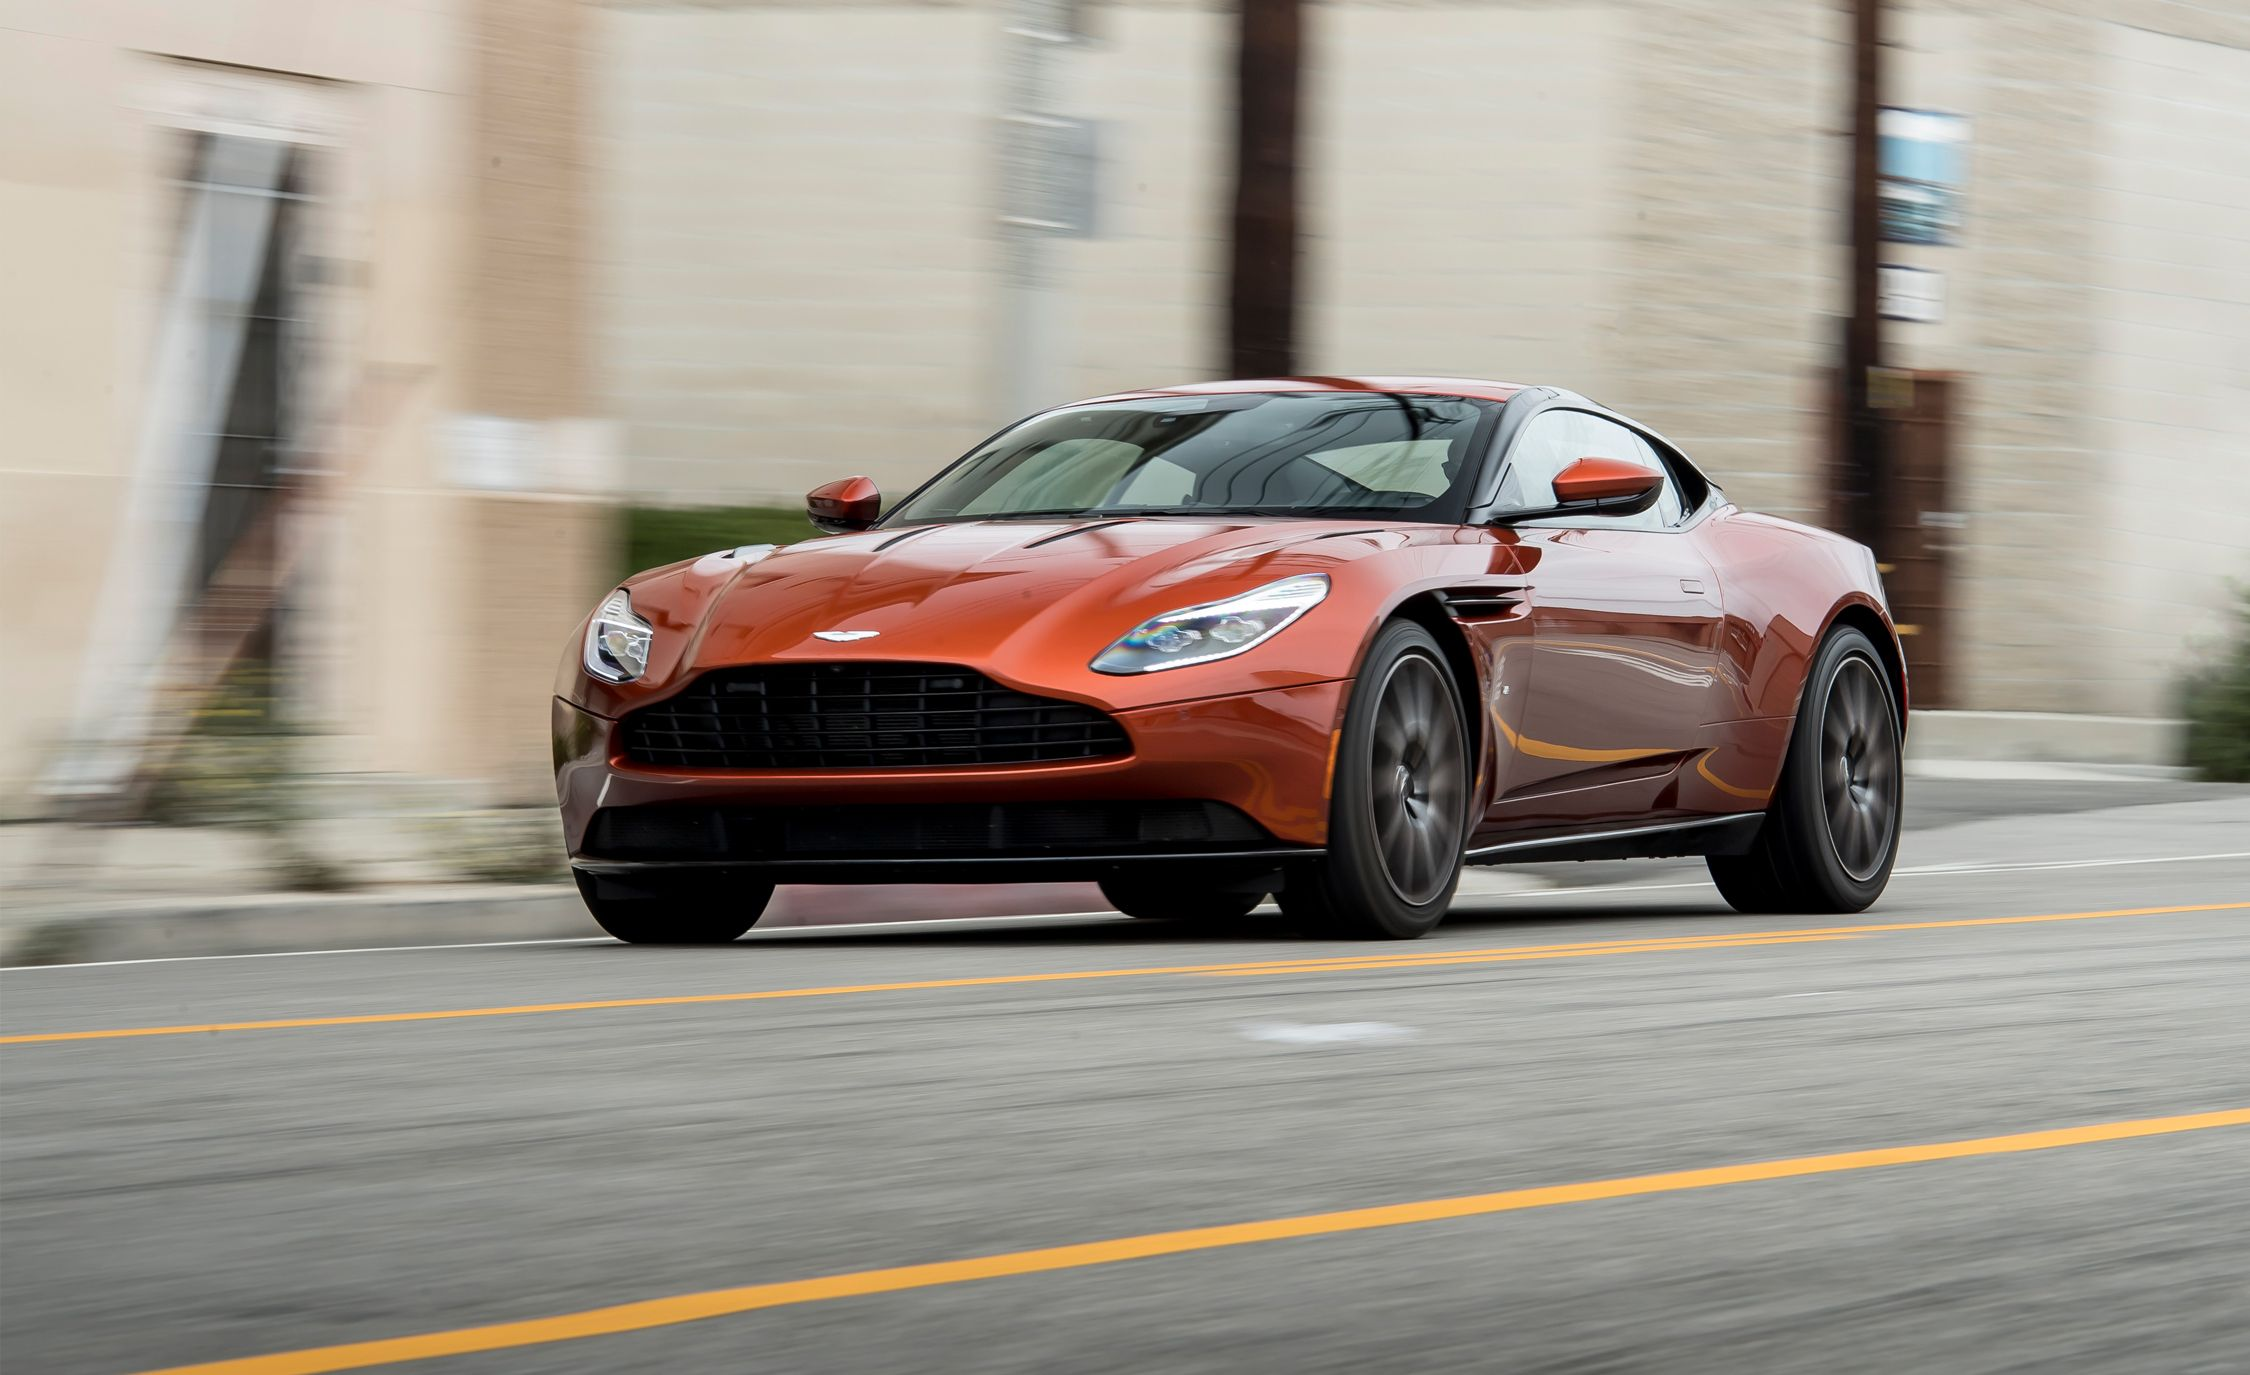 2017 Aston Martin Db11 Tested The New Classic